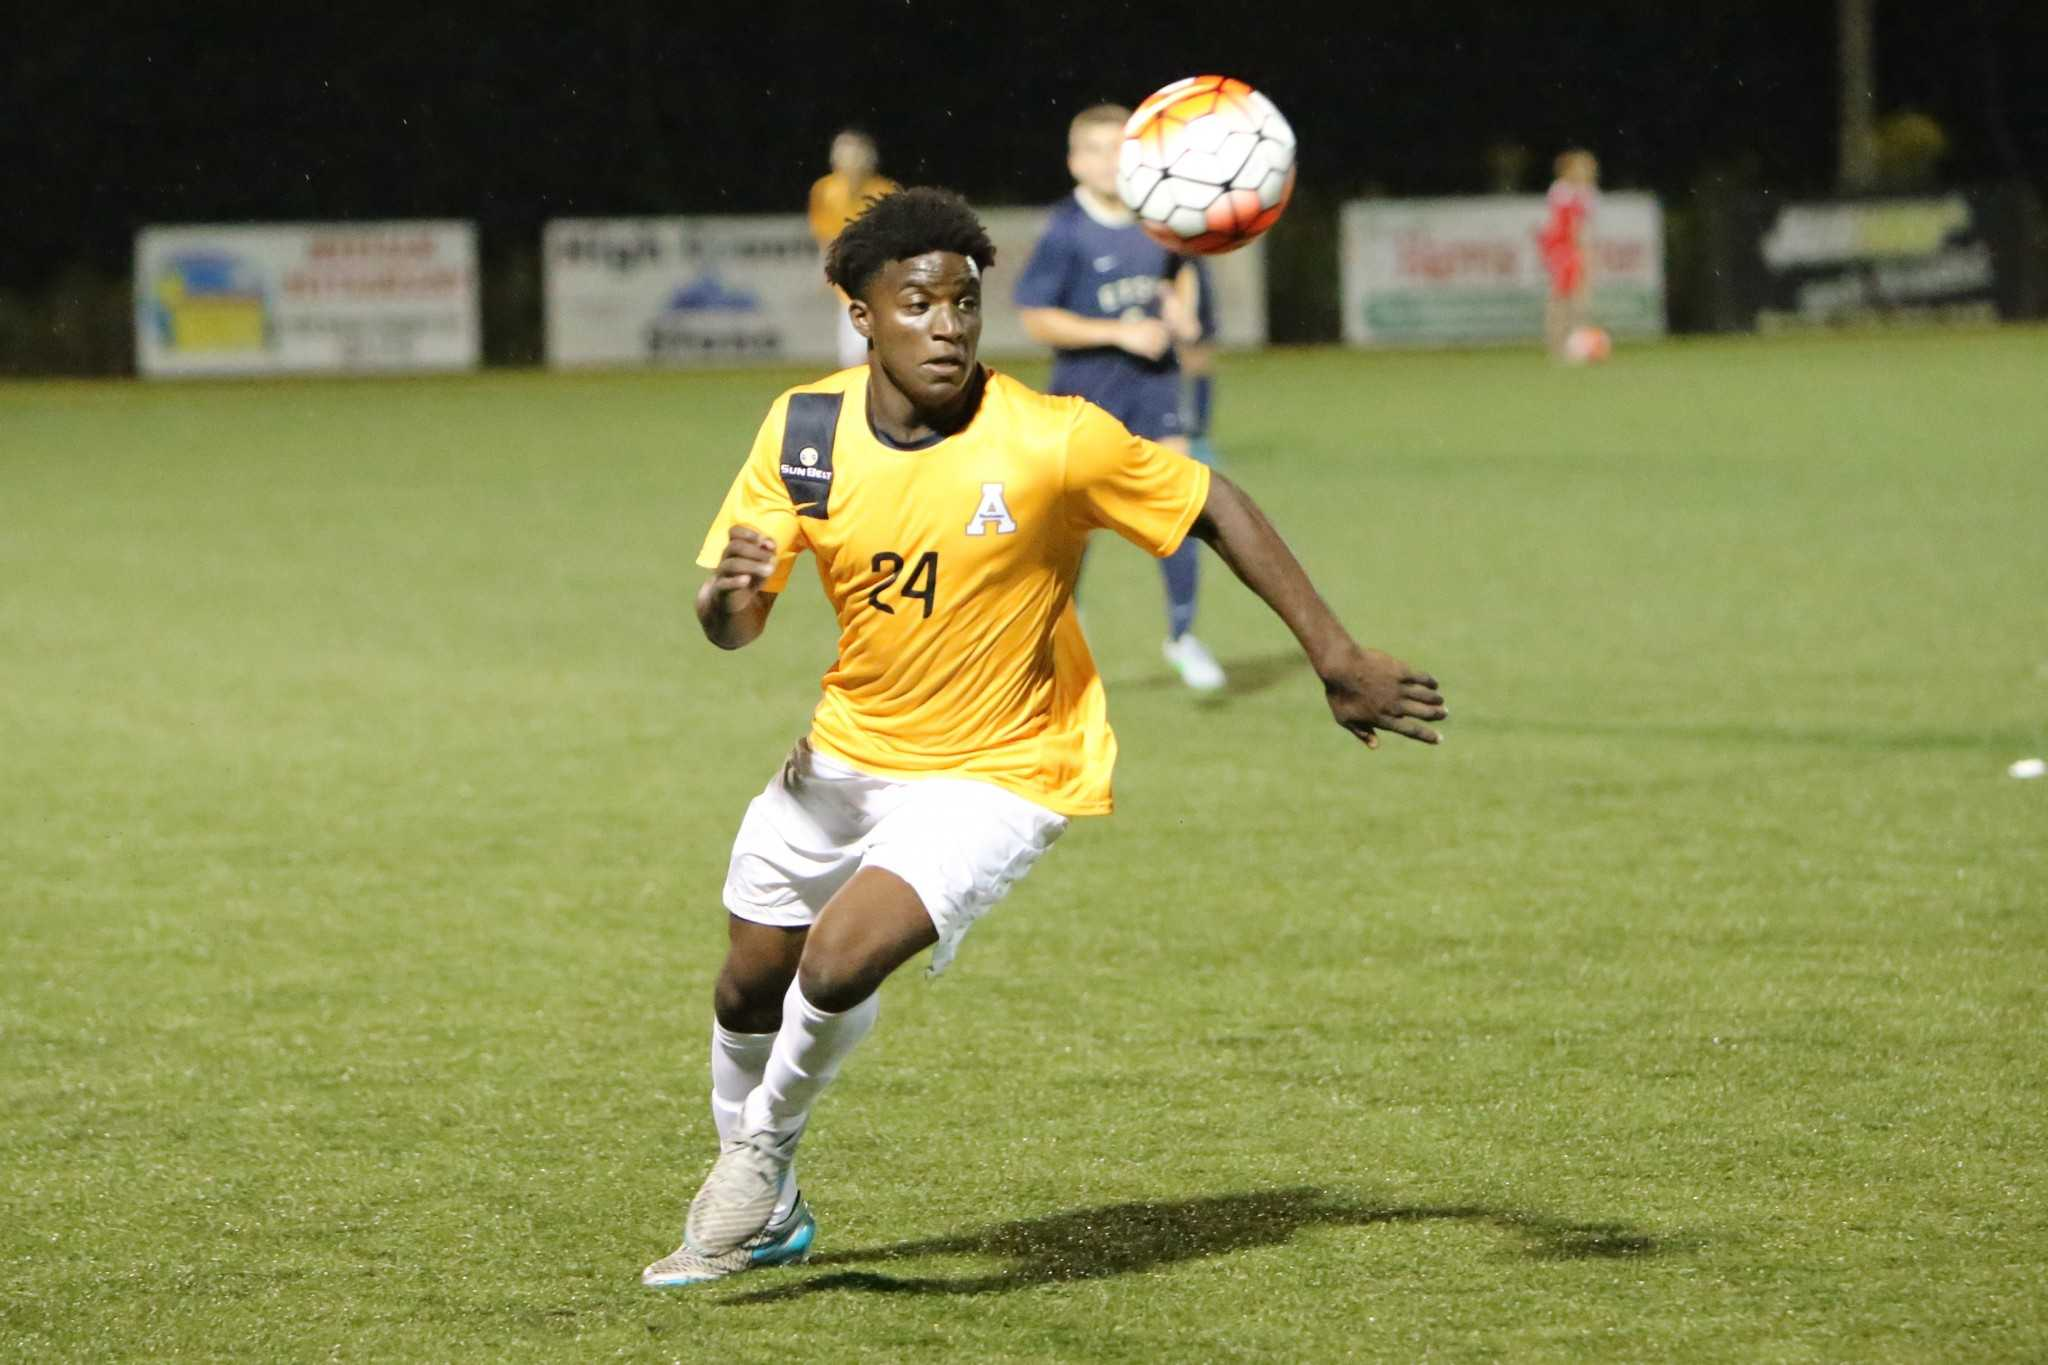 Freshman+defender+Jamir+James+goes+for+a+loose+ball+against+Eastern+Tennessee+State+University+Wednesday.+The+Mountaineers+won+the+game+2-1.%0A+Image+Credit%3A+Dakota+Hamilton